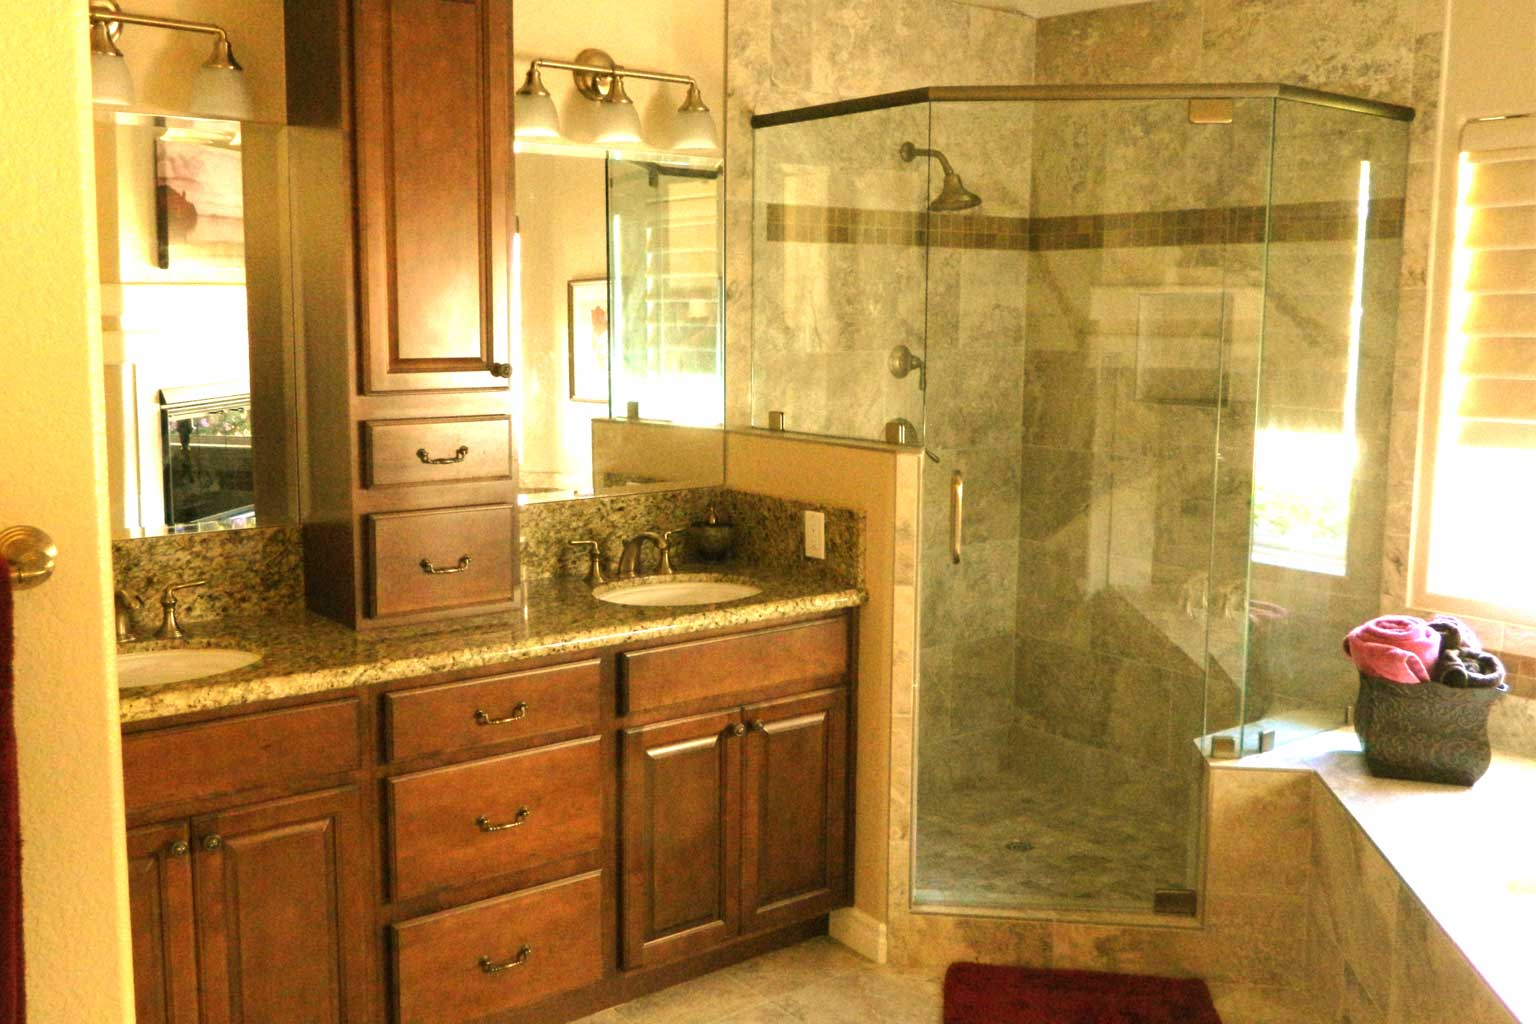 Cherry Cabinets Integrated Tub Mosaic Tile Bathroom Remodel